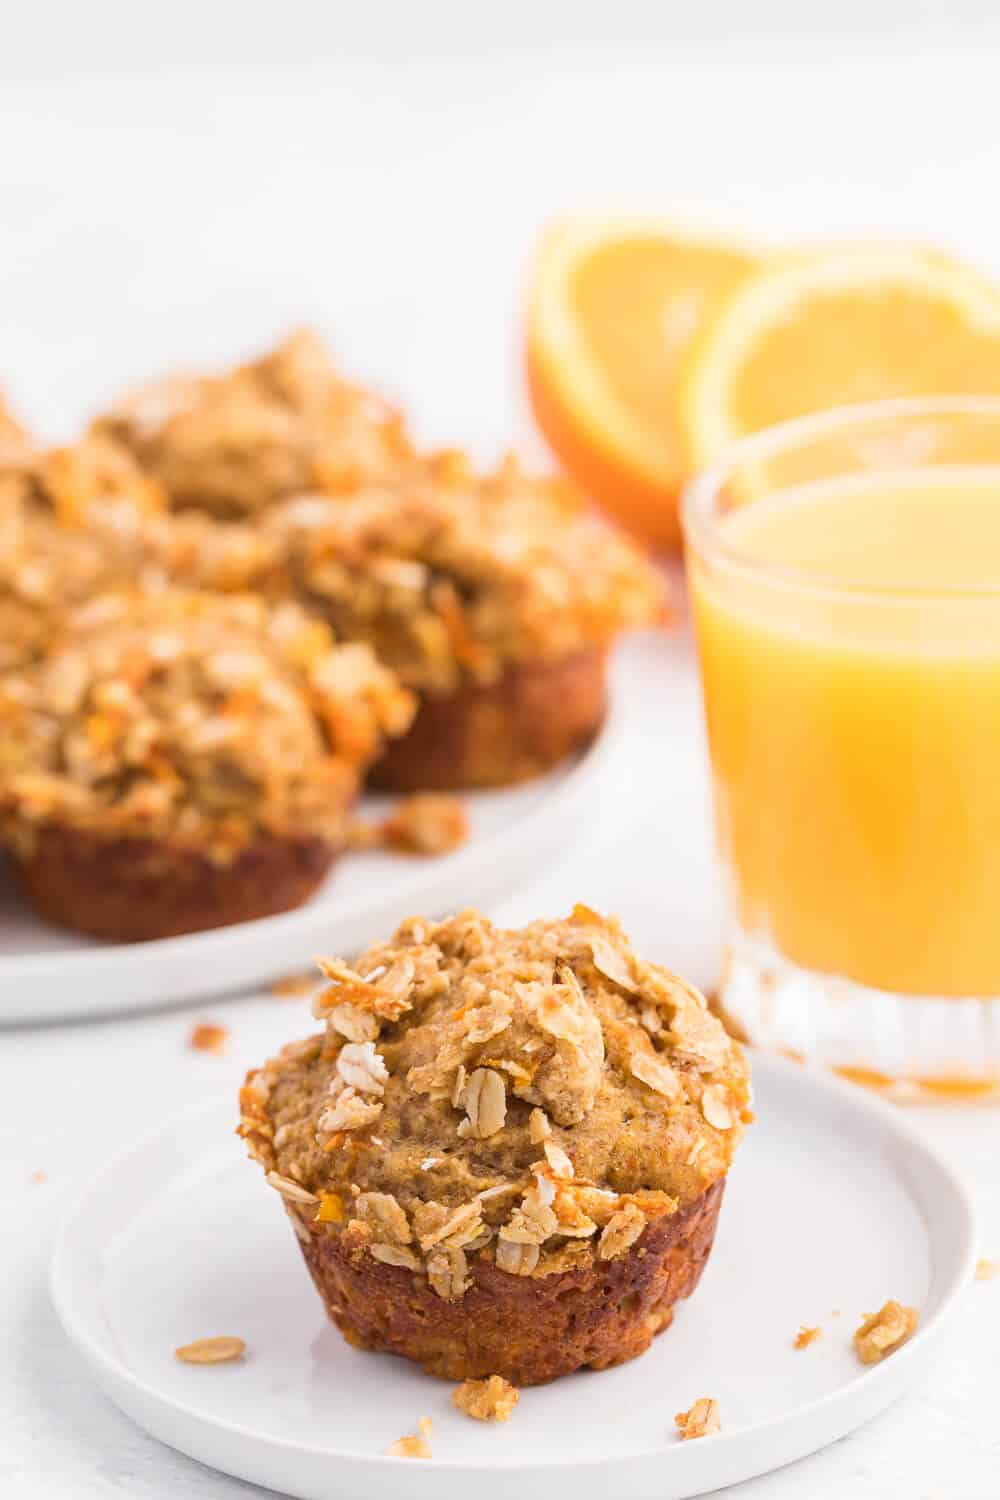 Double Orange Muffins - Packed full of goodness with carrots, orange juice, oat bran, flax seed, Greek yogurt and more. Make the night before to save time in the morning. Healthy and delicious!